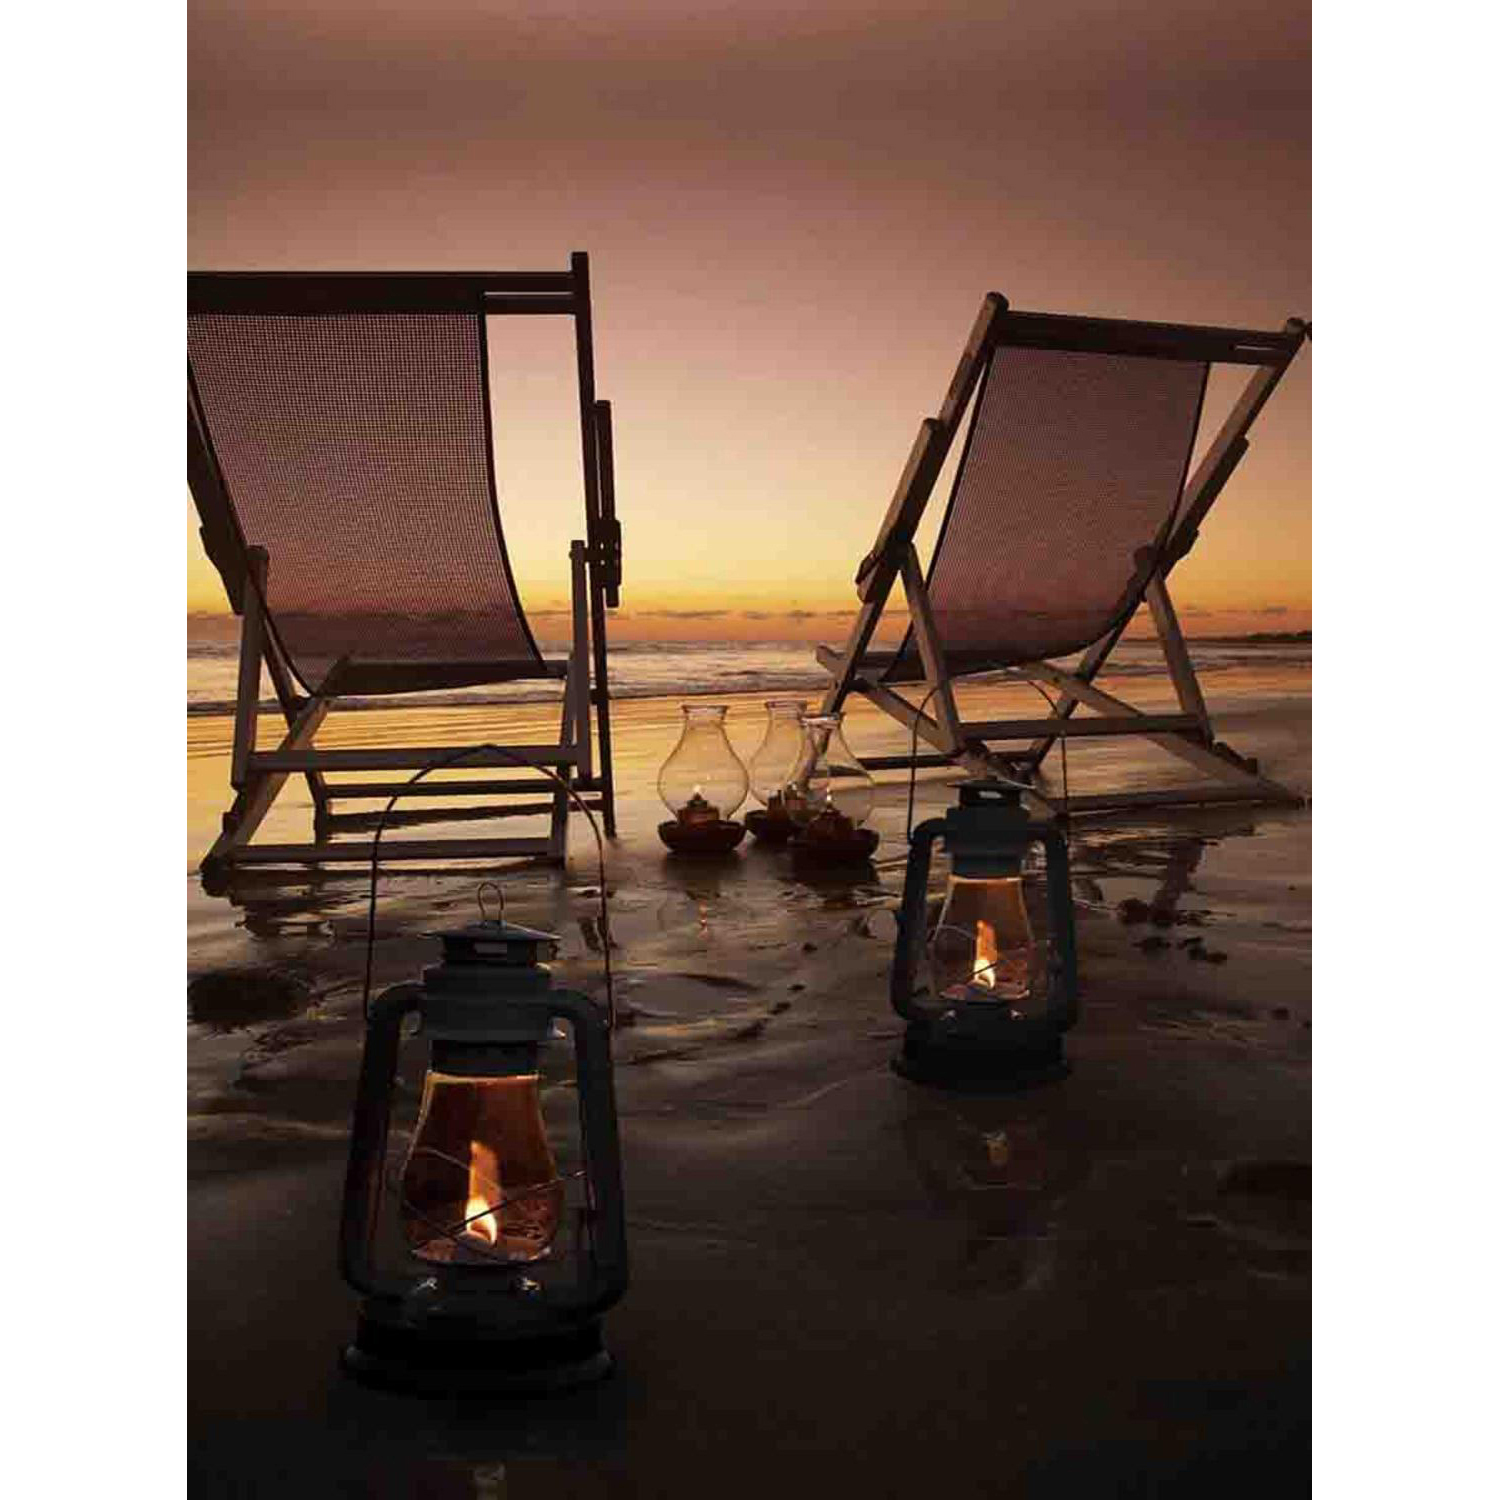 LED Light-Up Sunset Beach Relaxation with Lanterns Canvas Wall Art